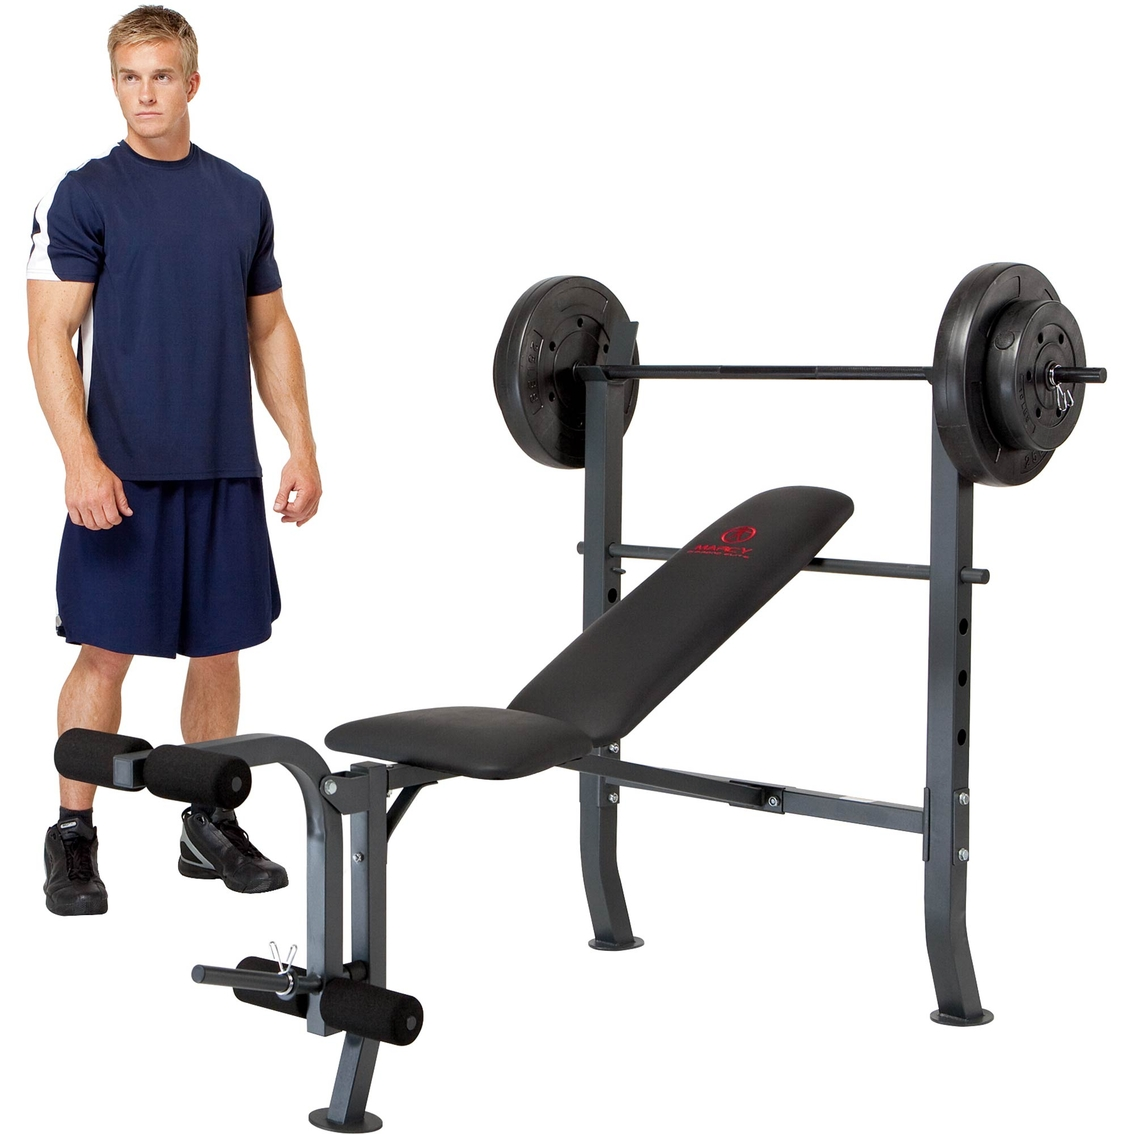 Marcy Olympic Bench With 80 Lb Weight Set Strength Training Sports Outdoors Shop The